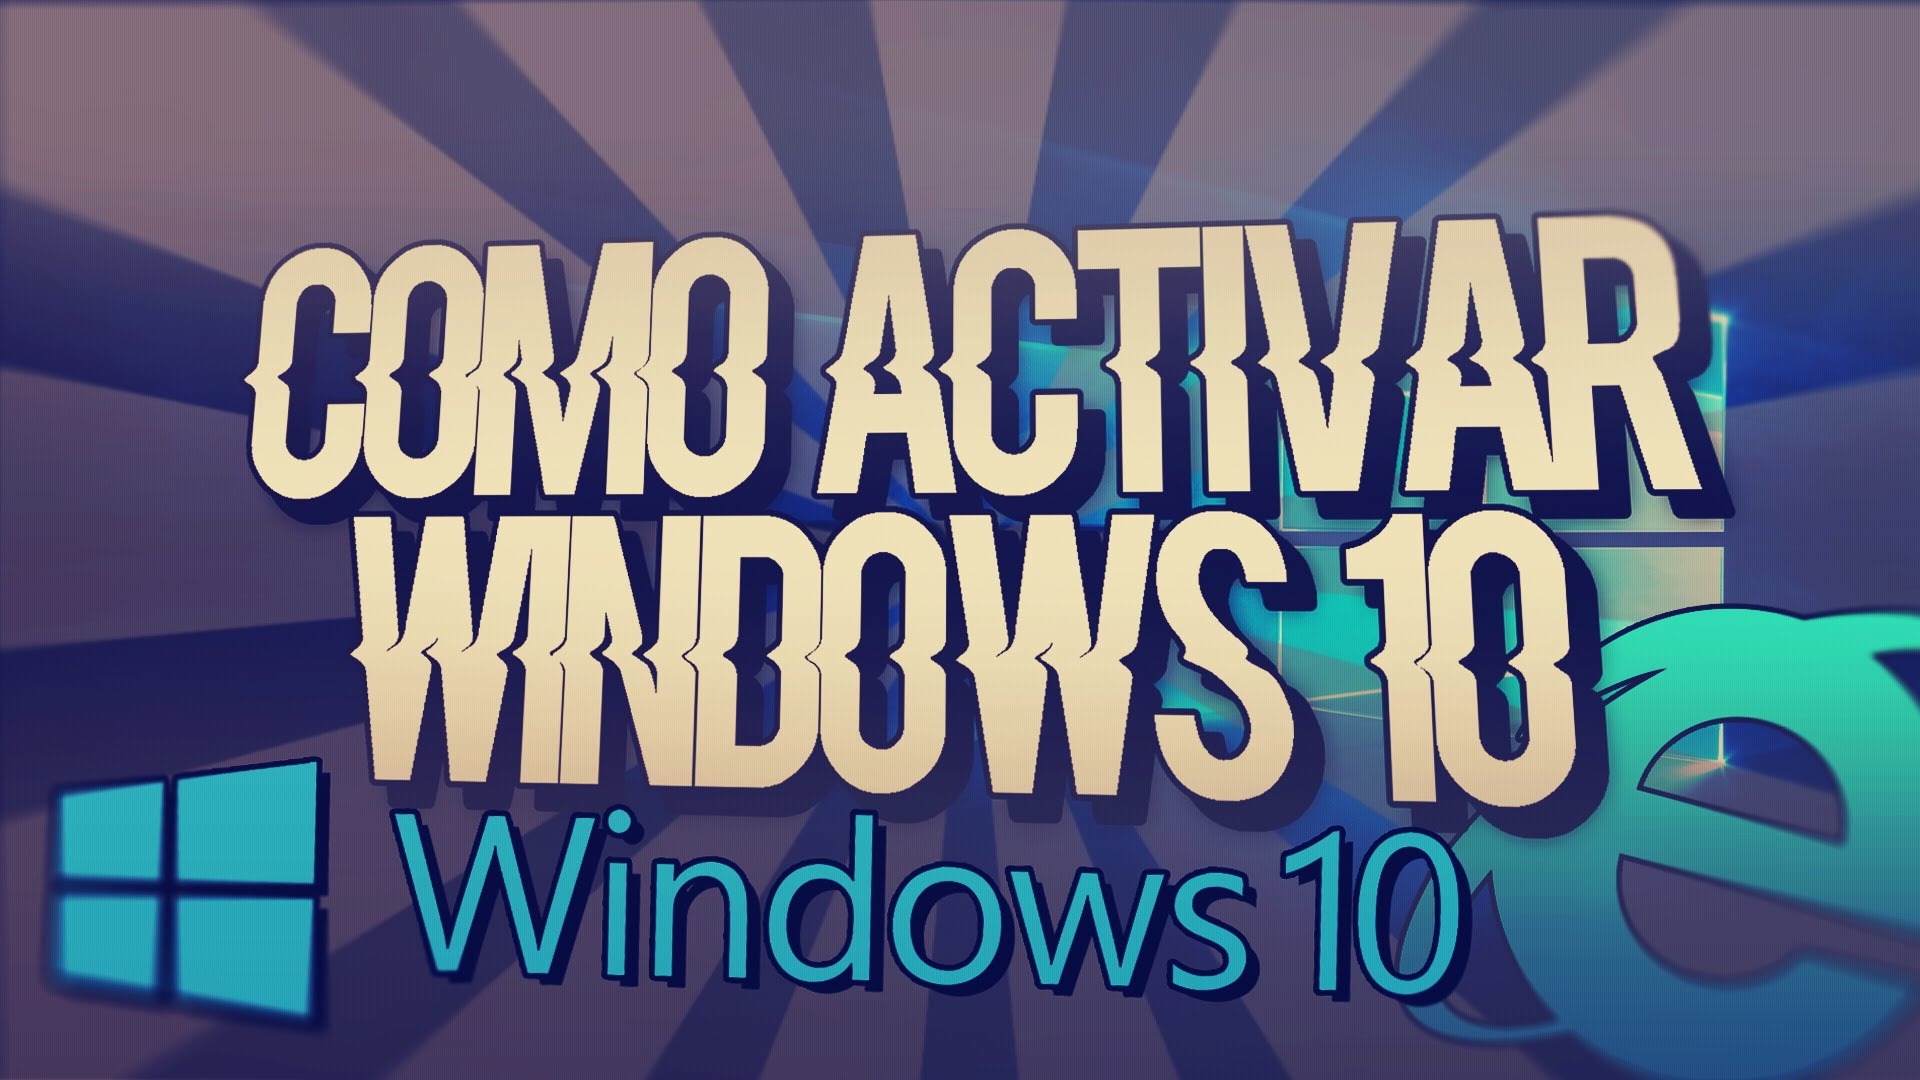 Windows 10 activation errors list or error codes and how to fix windows 10 activation errors list or error codes and how to fix windows 10 full version download link and product key sell ccuart Choice Image